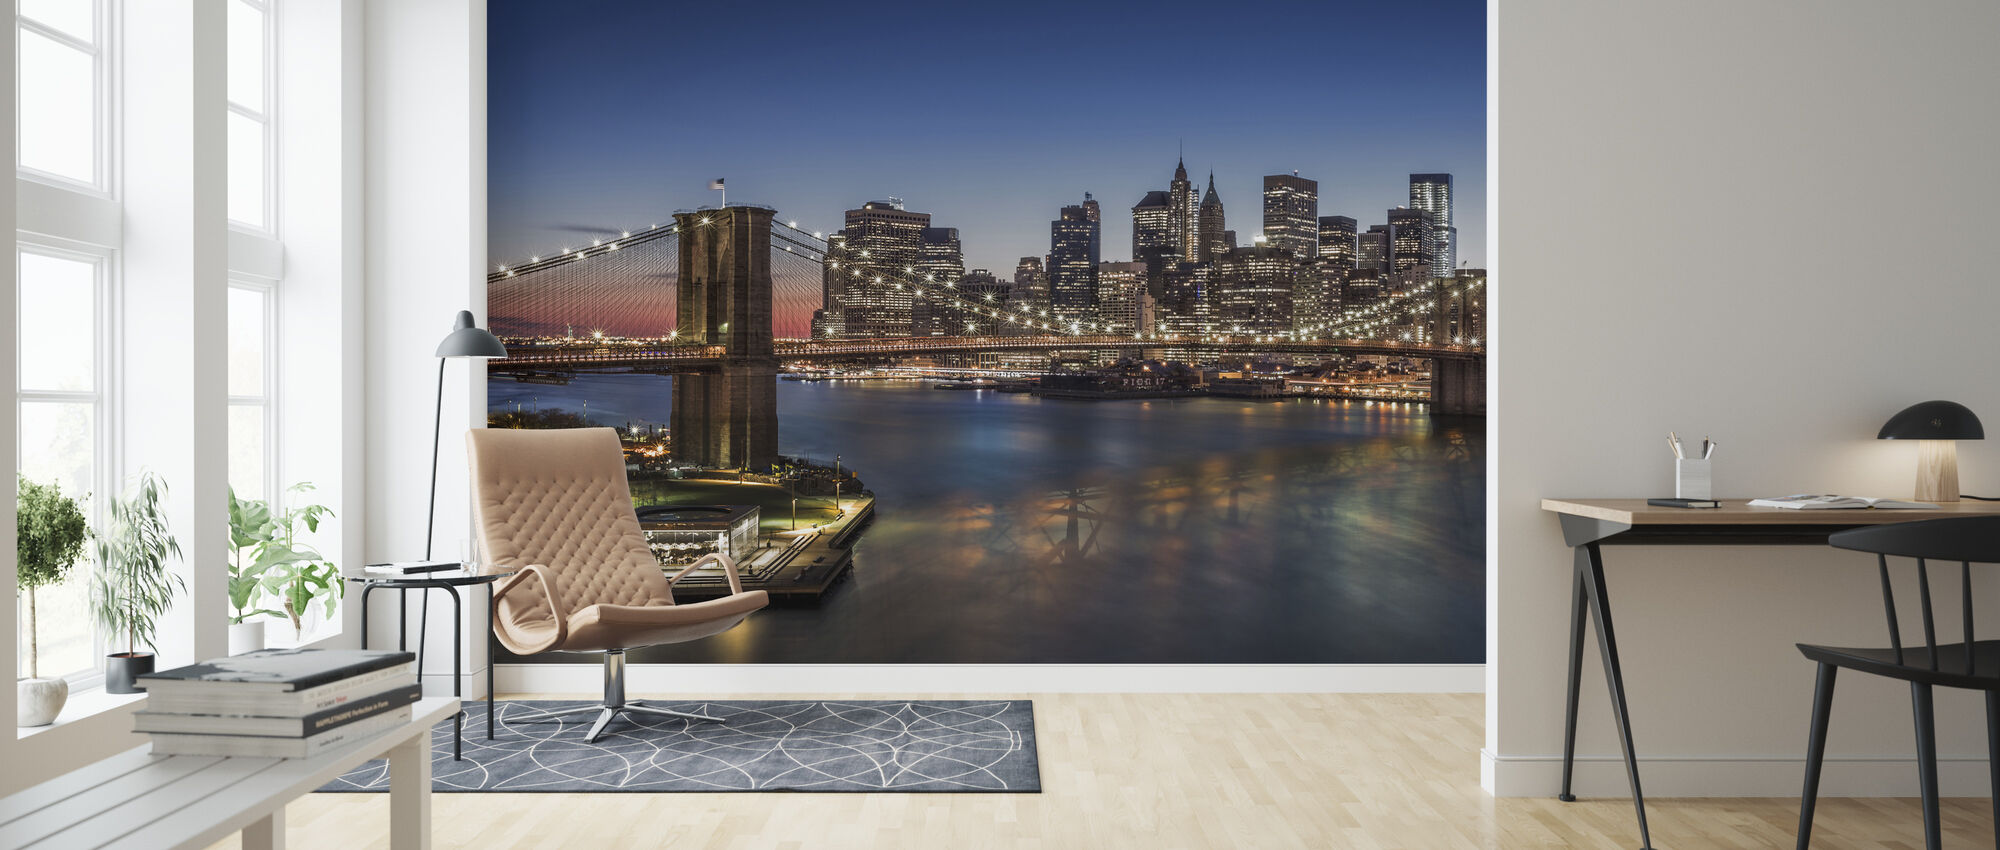 Brooklyn Bridge and Downtown Manhattan - Wallpaper - Living Room